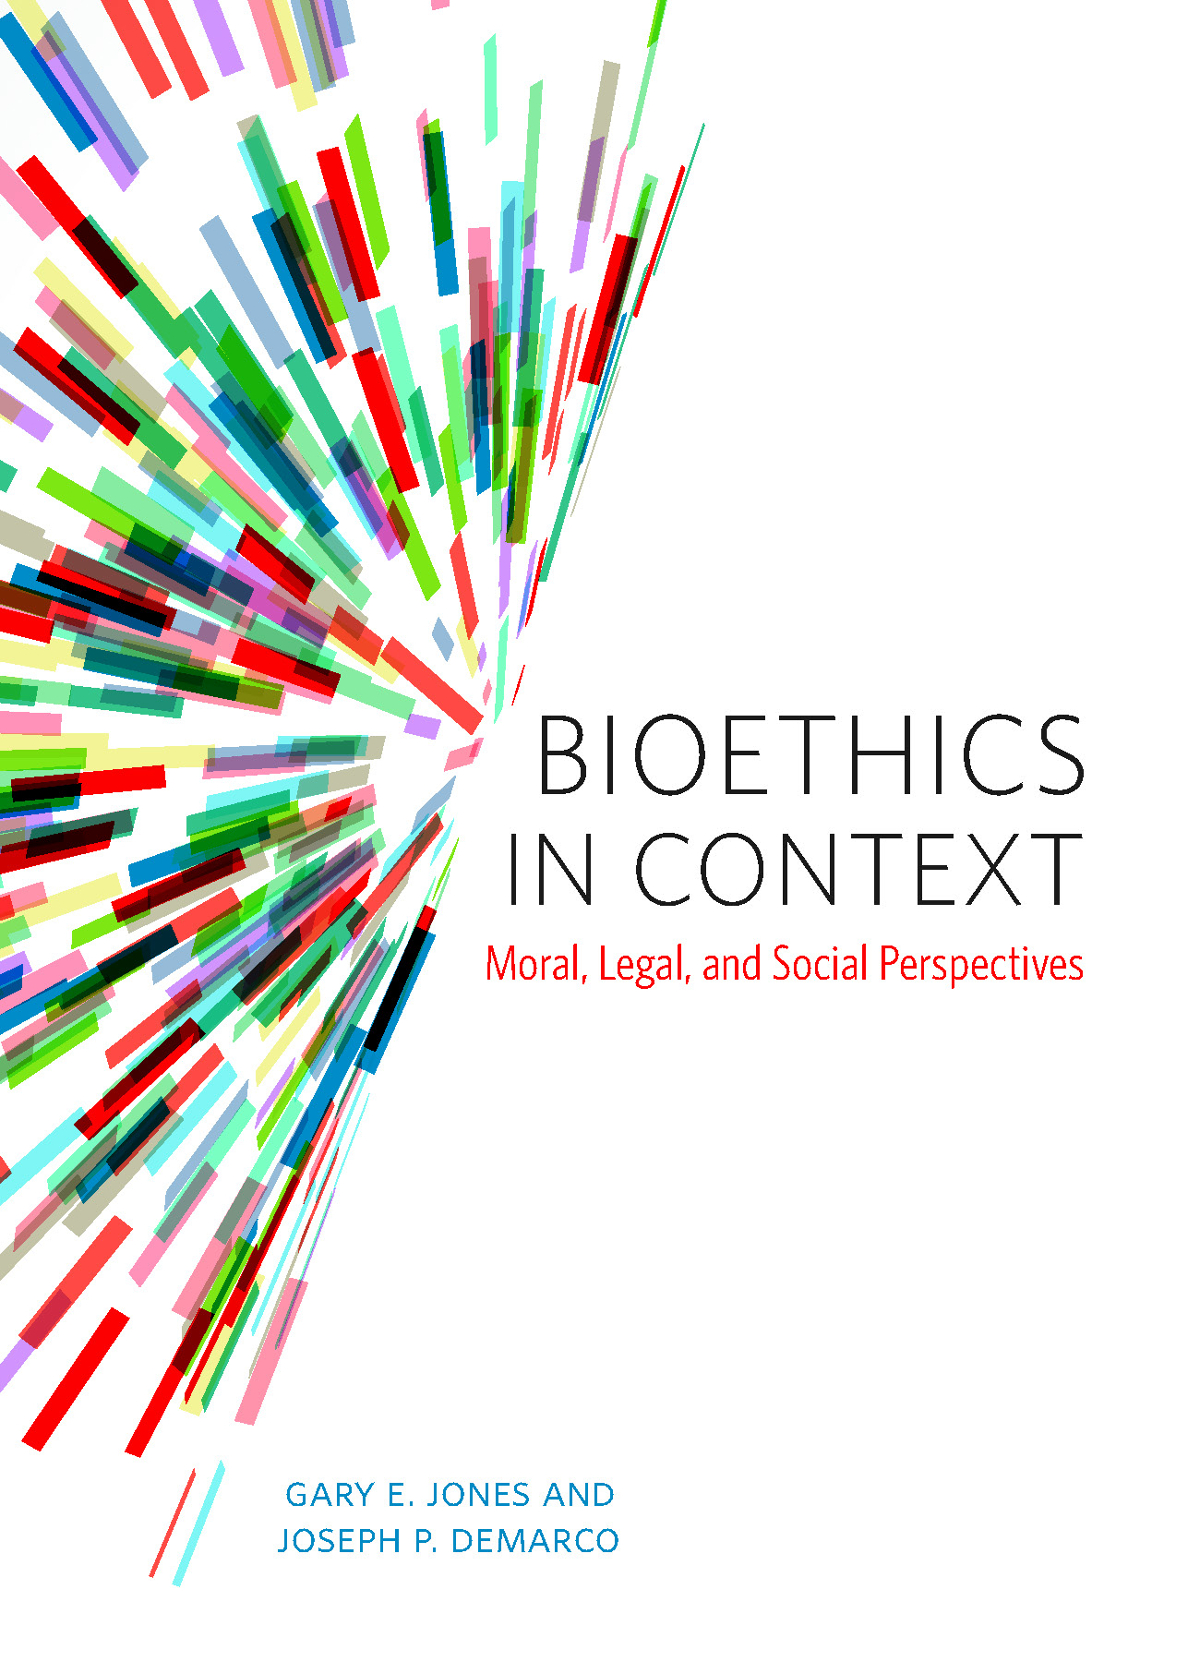 aap bioethics essay contest